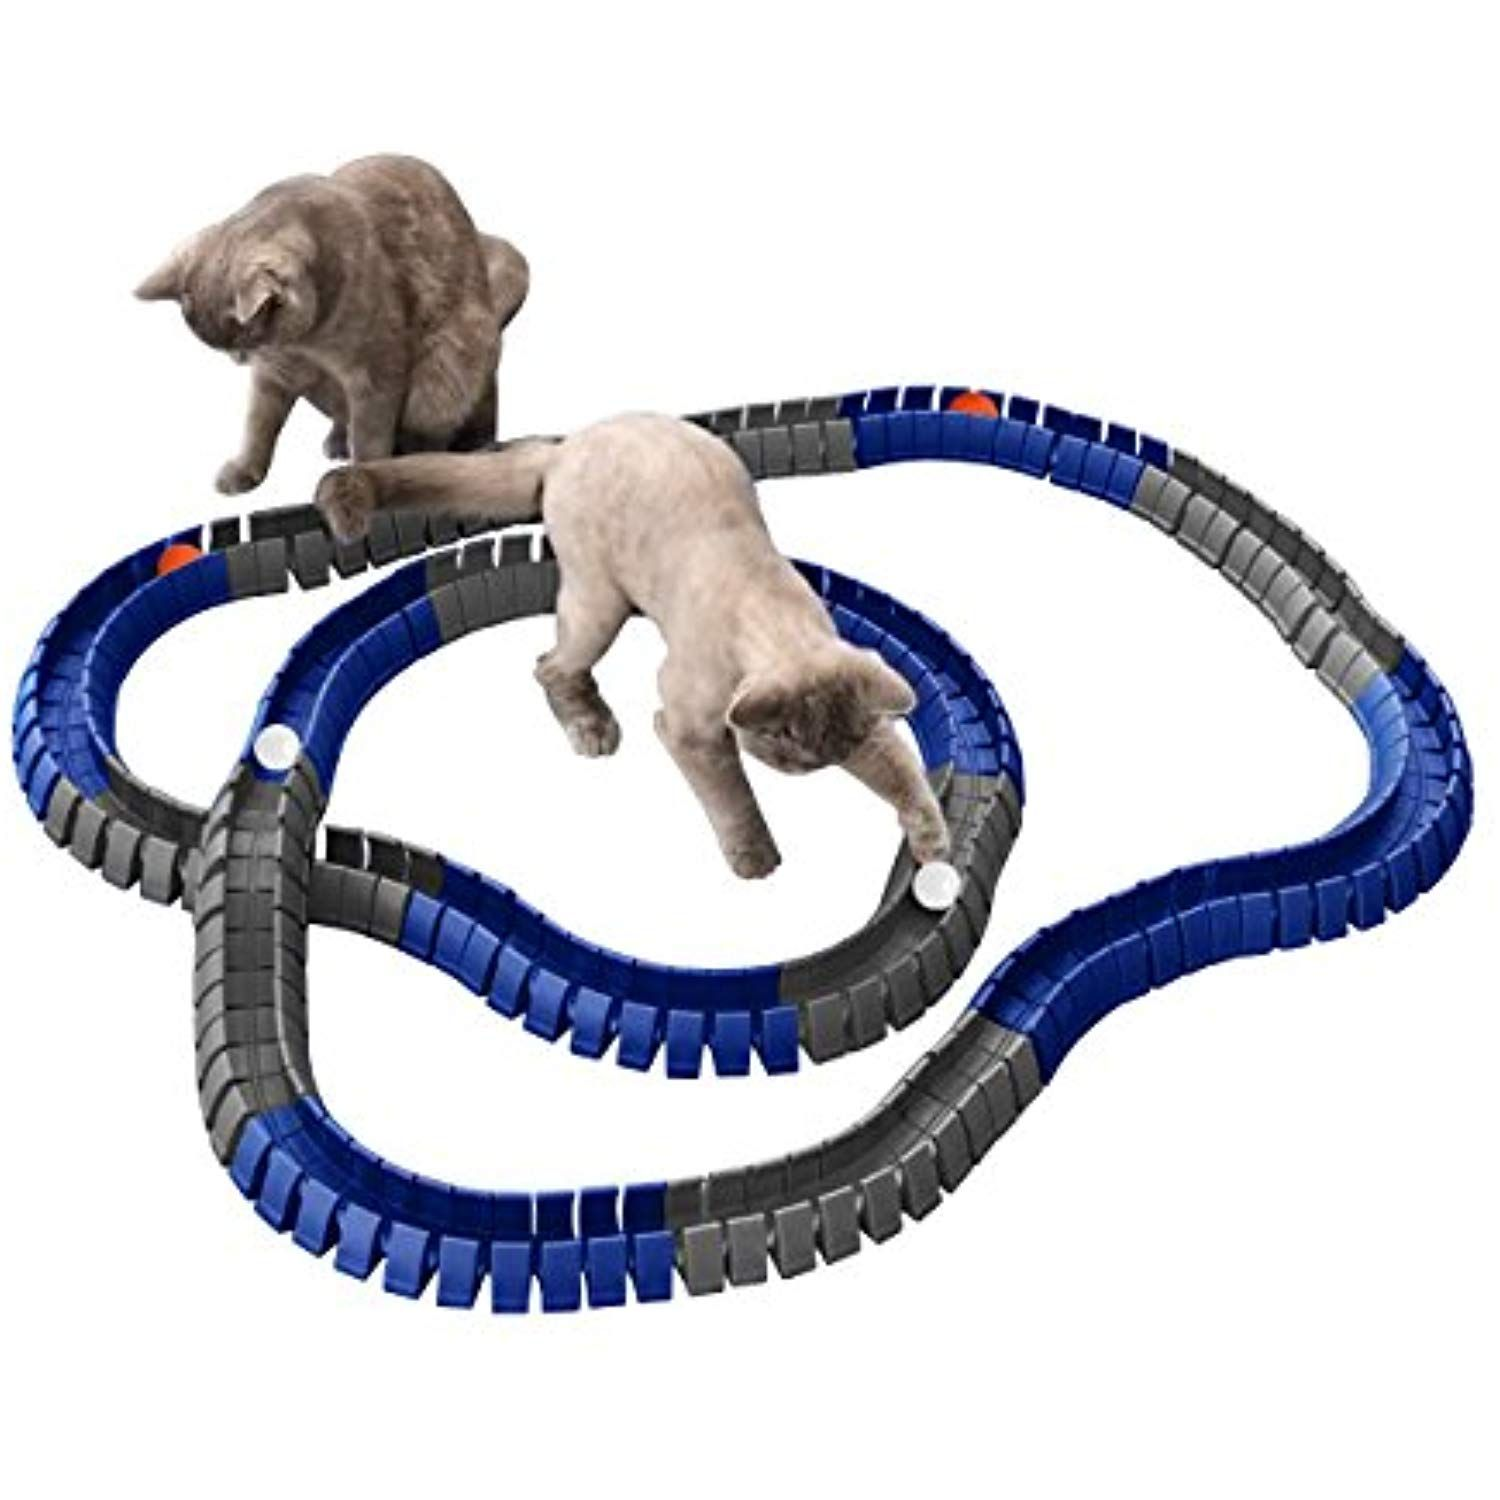 Magic Cat Track And Ball Toy Double Size For Cats Kittens Pets Kitties Consisting Of 16 Flexible Tracks And 4 Balls 8ft Of Blu Cat Toys Magic Cat Kittens